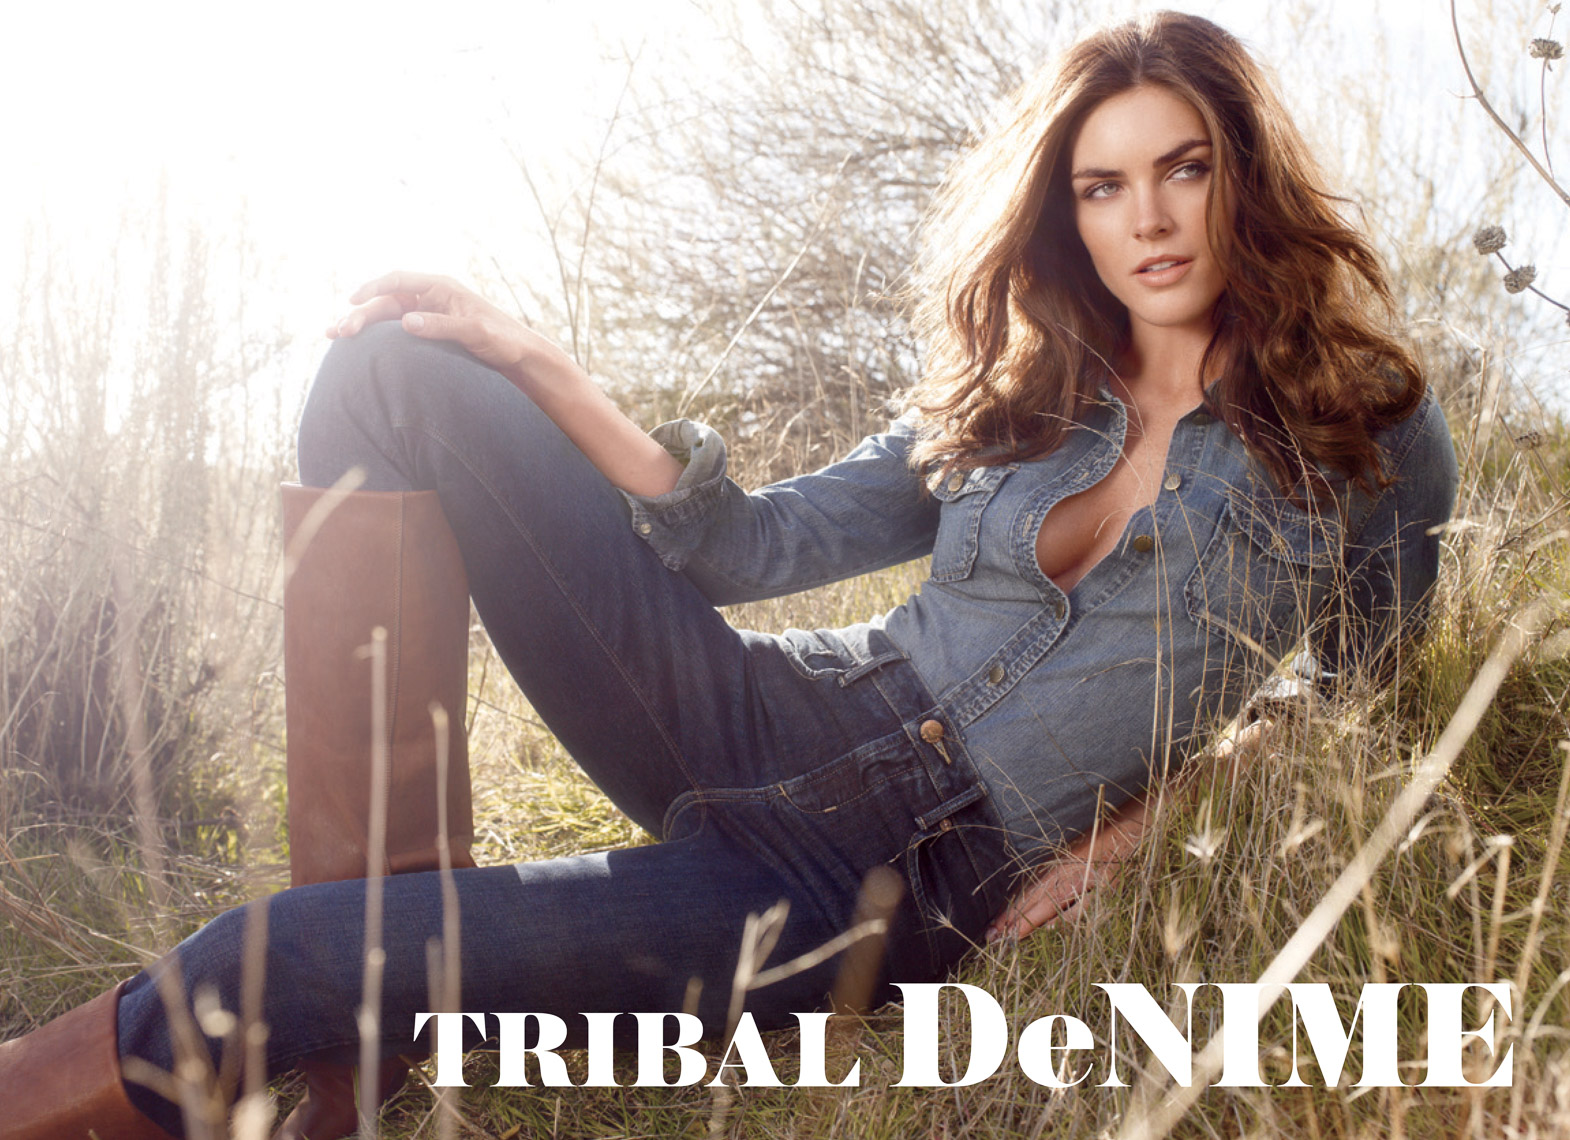 Tribal_Denime-8